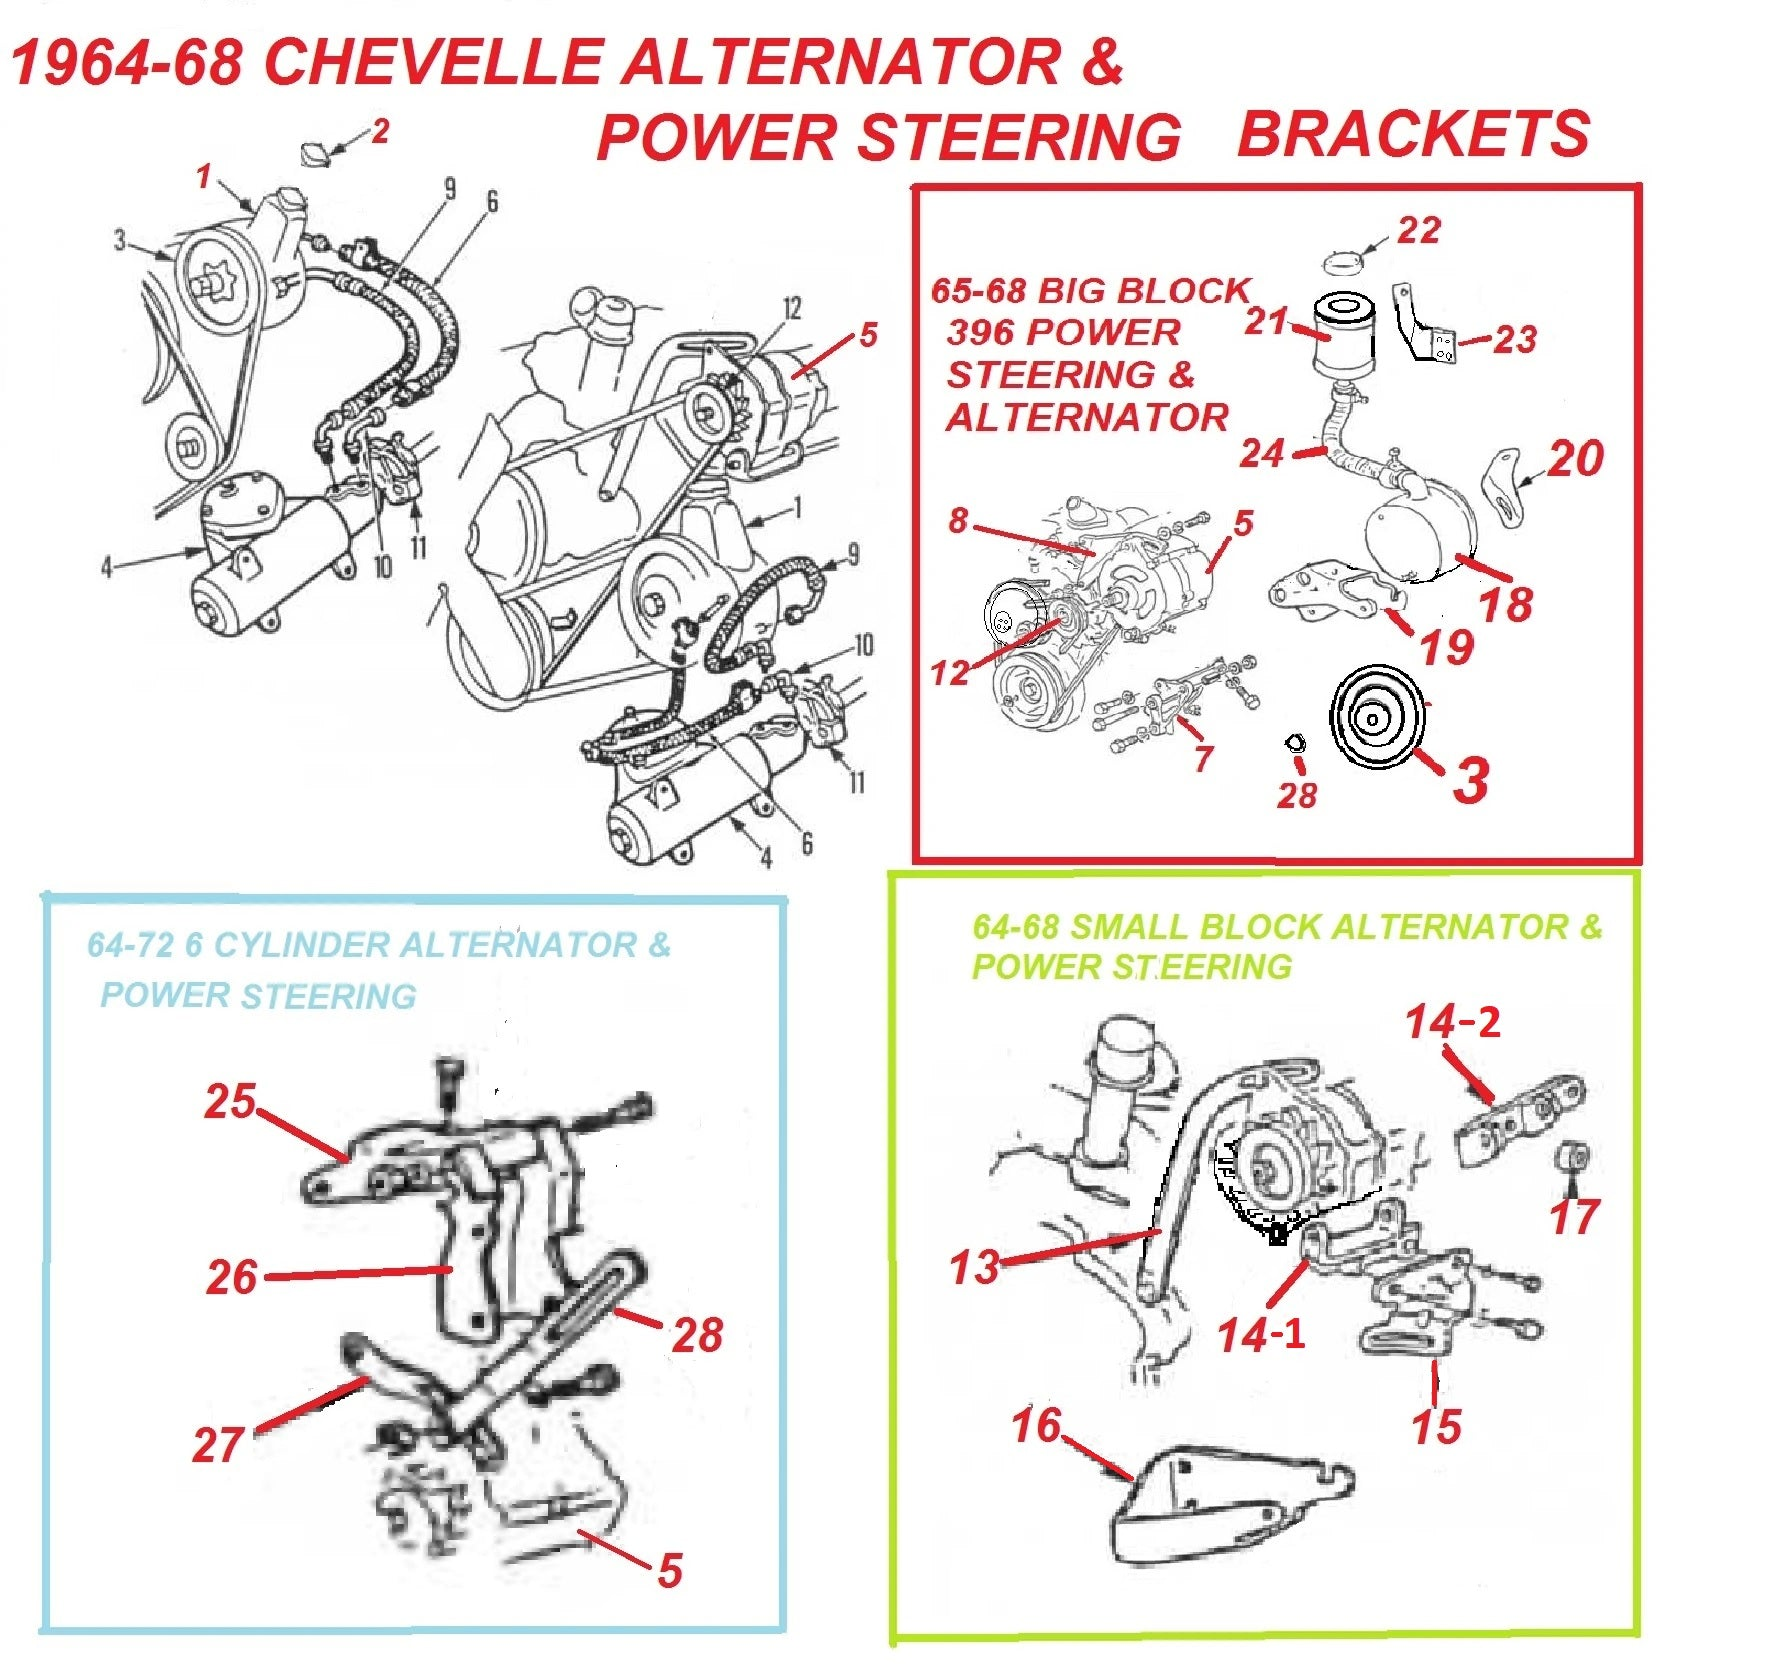 64-68 chevelle alternator & power steering brackets